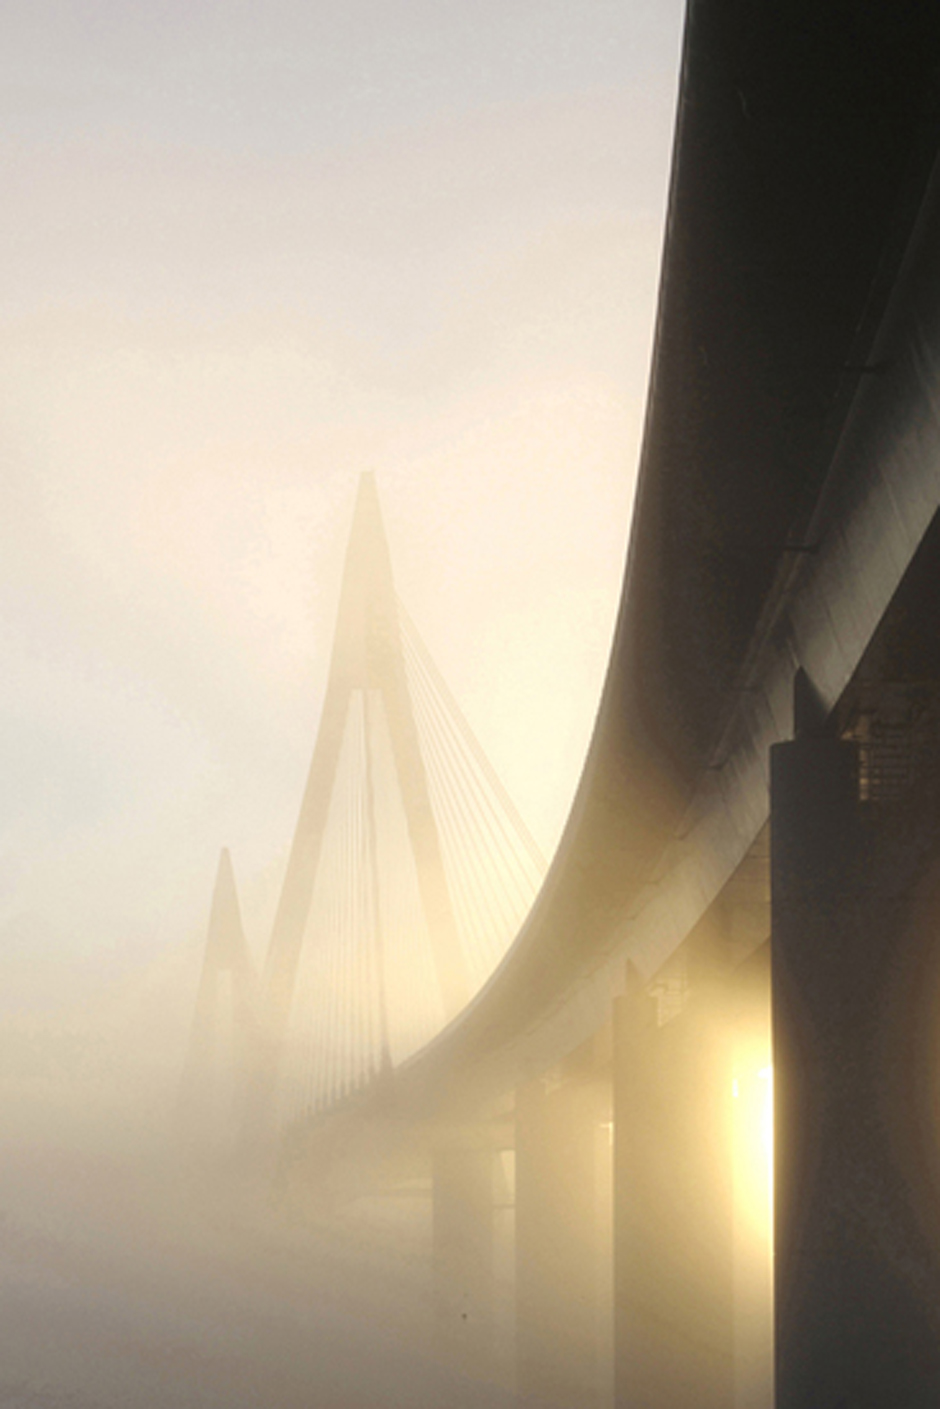 Bridge in early morning